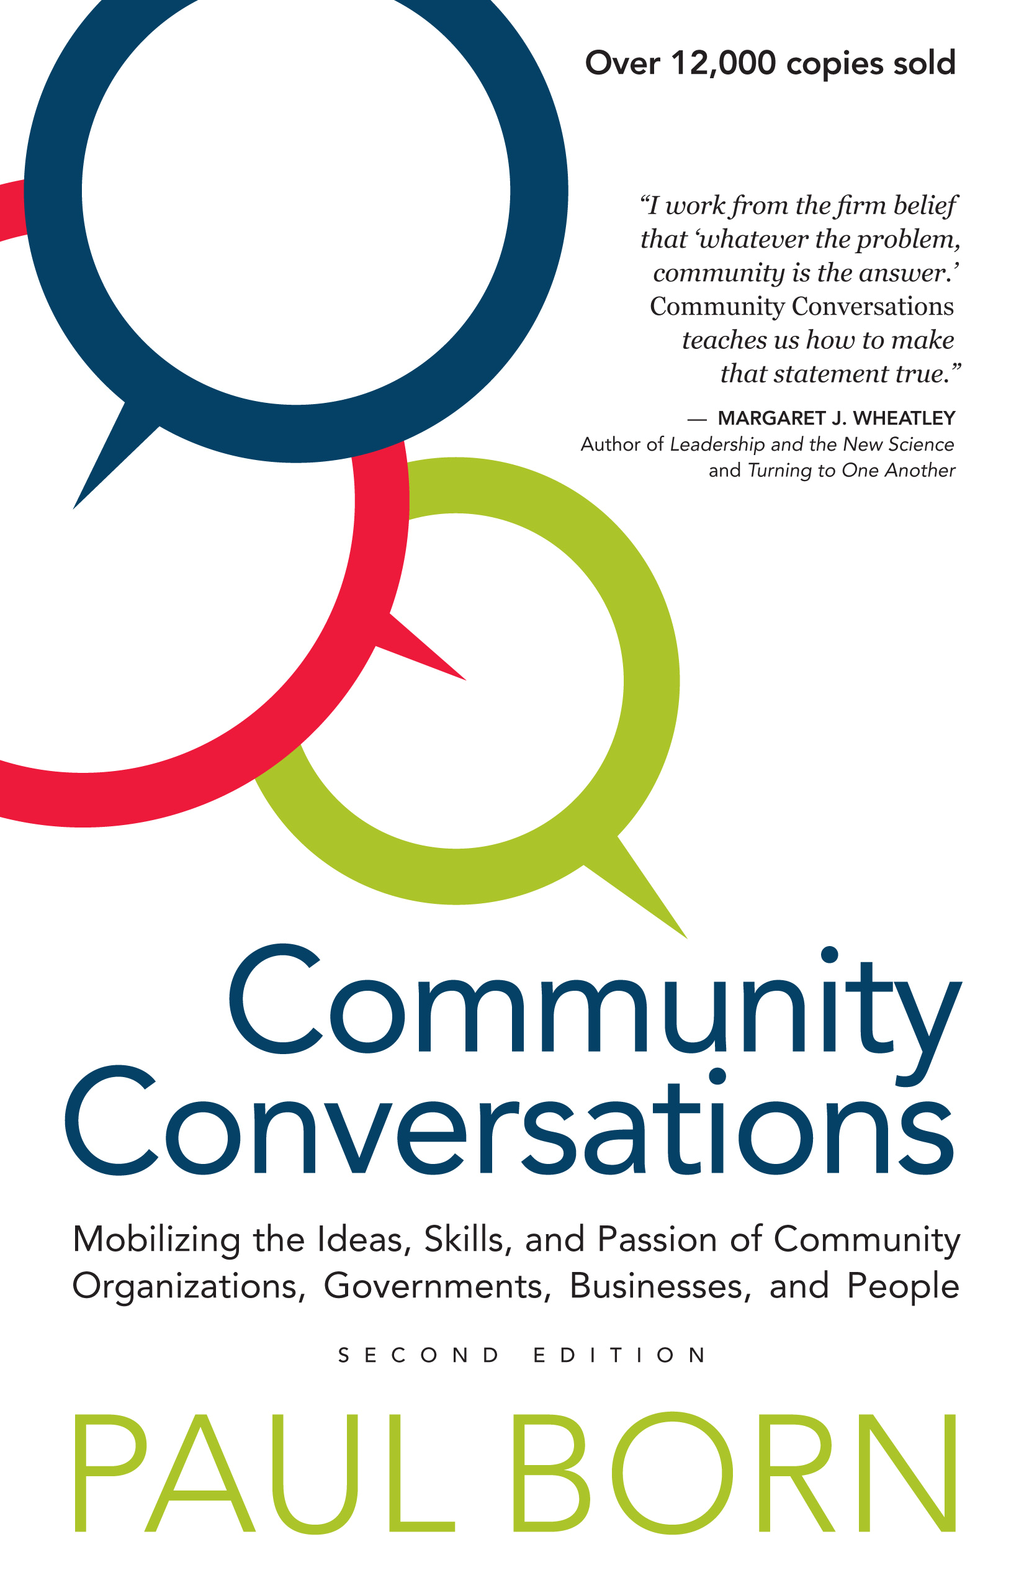 Community Conversations: Mobilizing the Ideas, Skills, and Passion of Community Organizations, Governments, Businesses, and People, Second Edition By: Paul Born